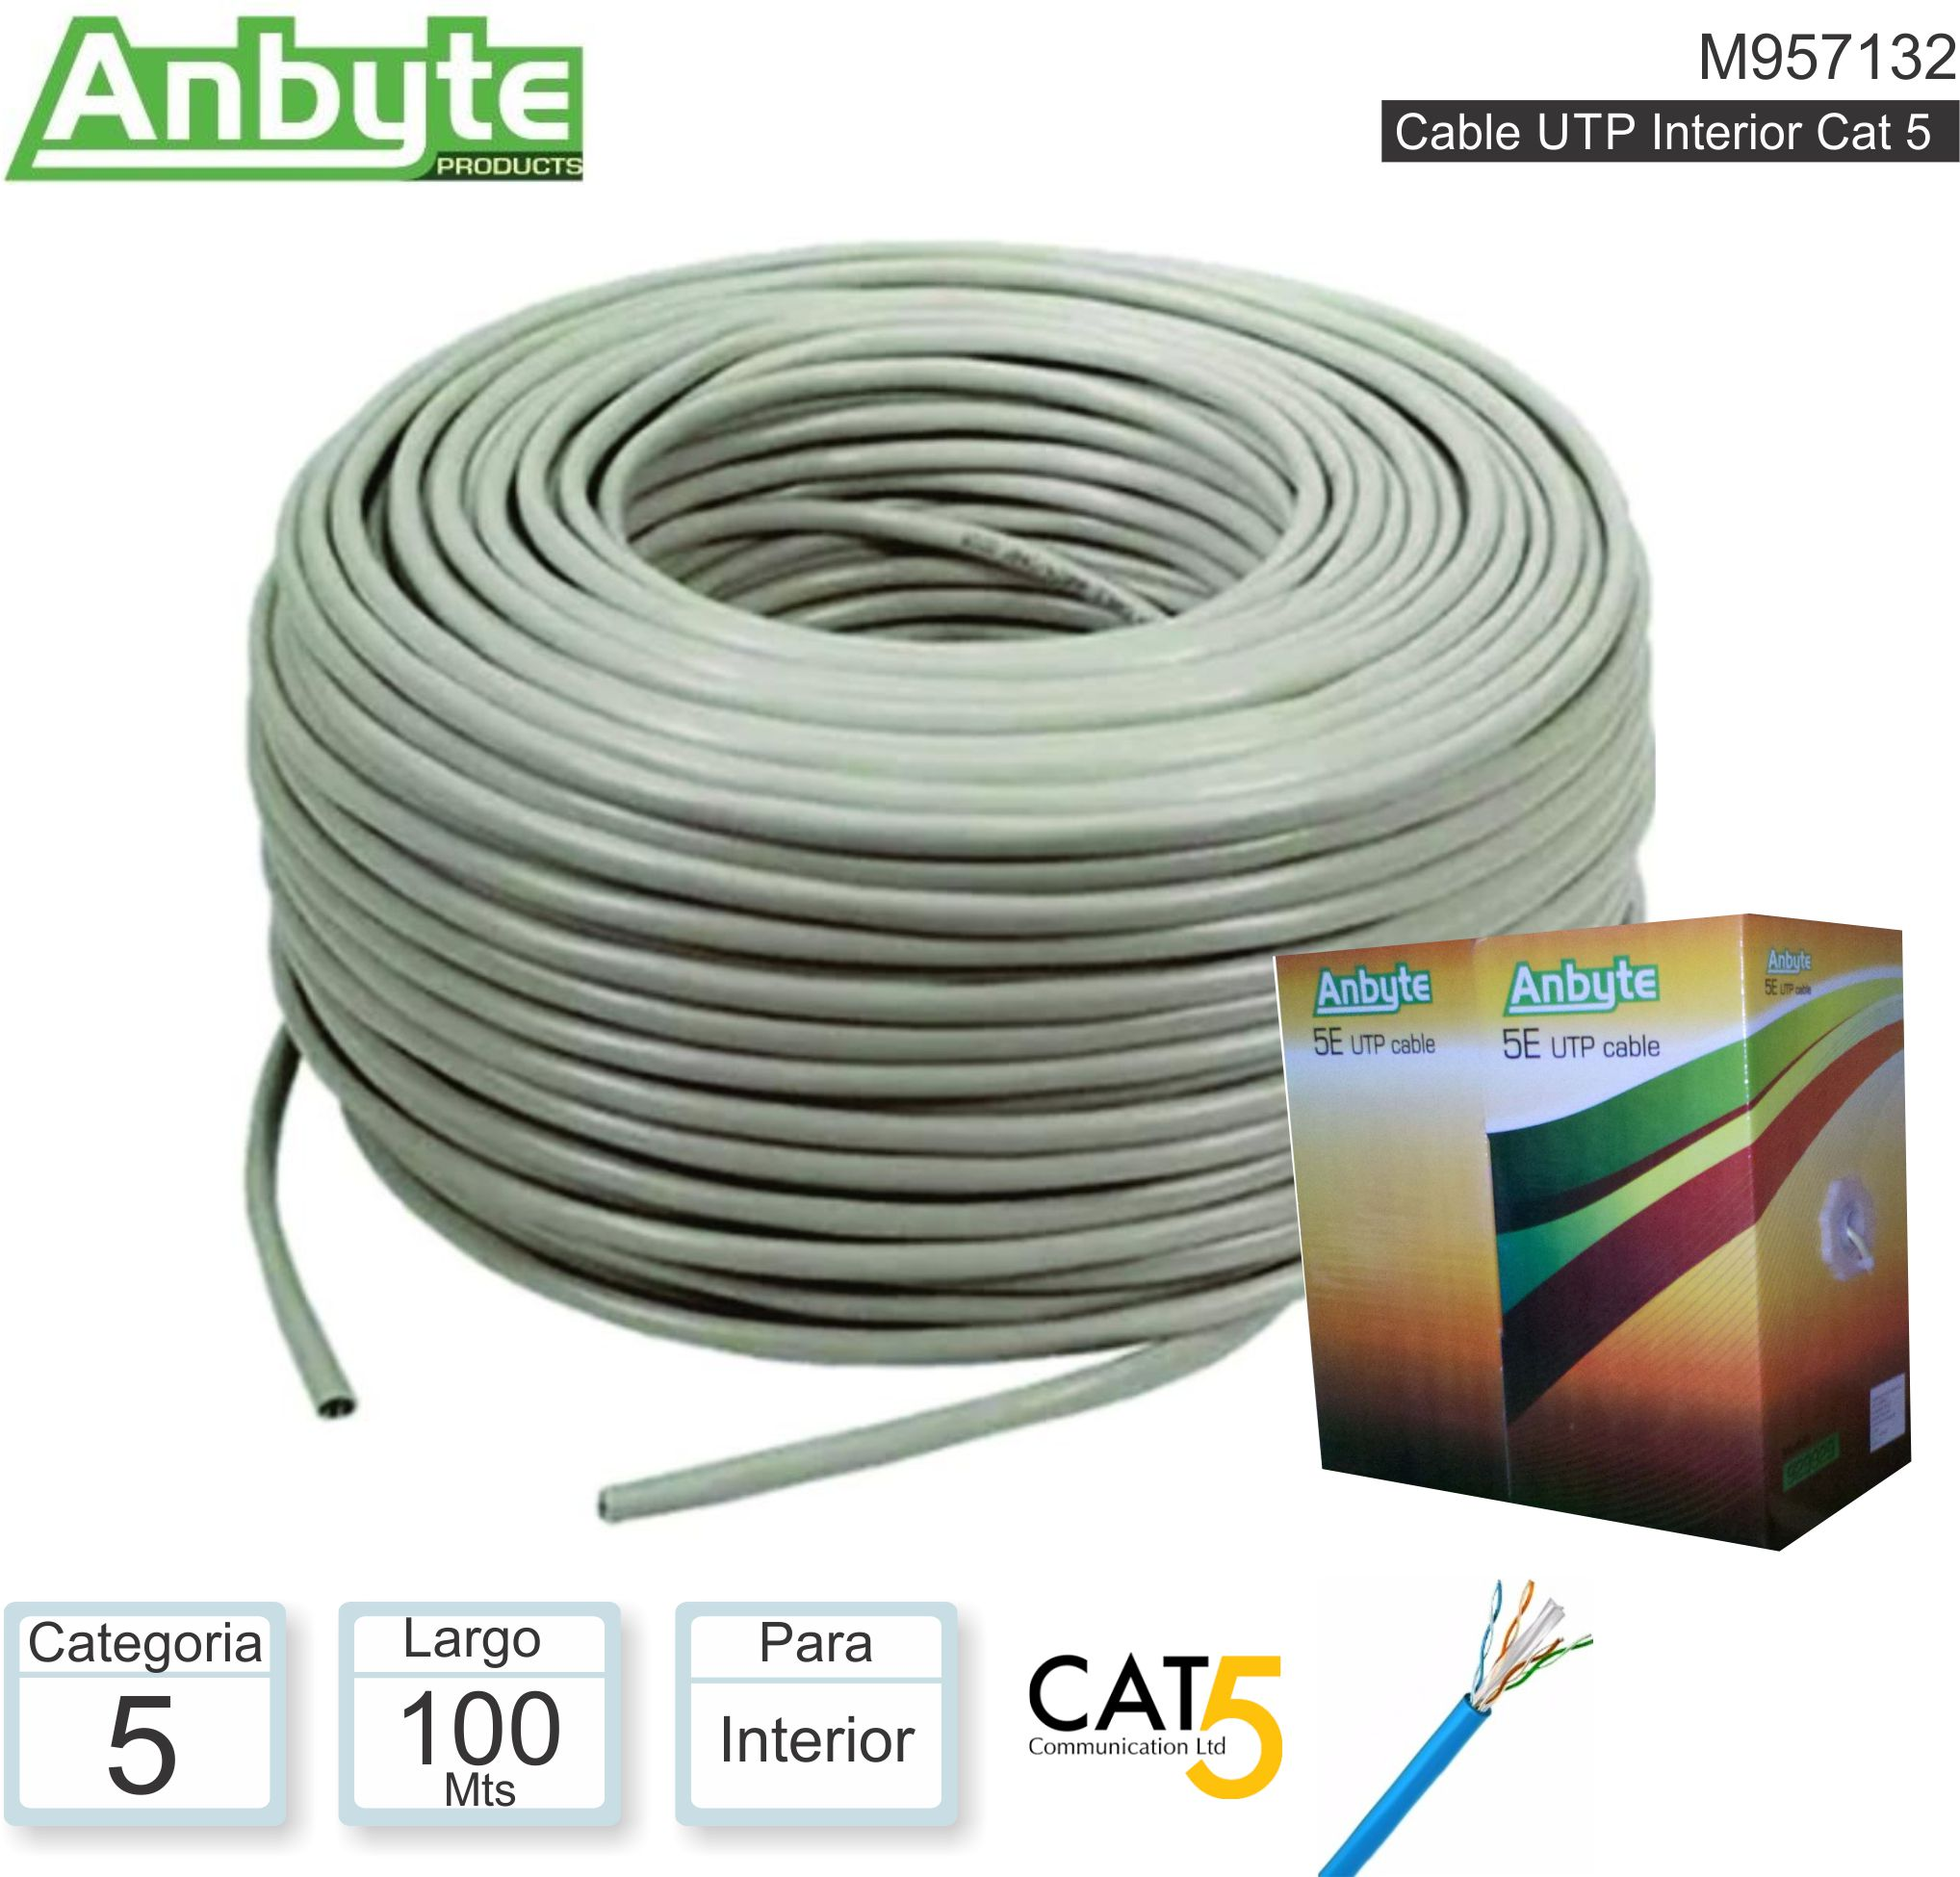 Cable UTP C5 100M INT ANYBYTE M957132